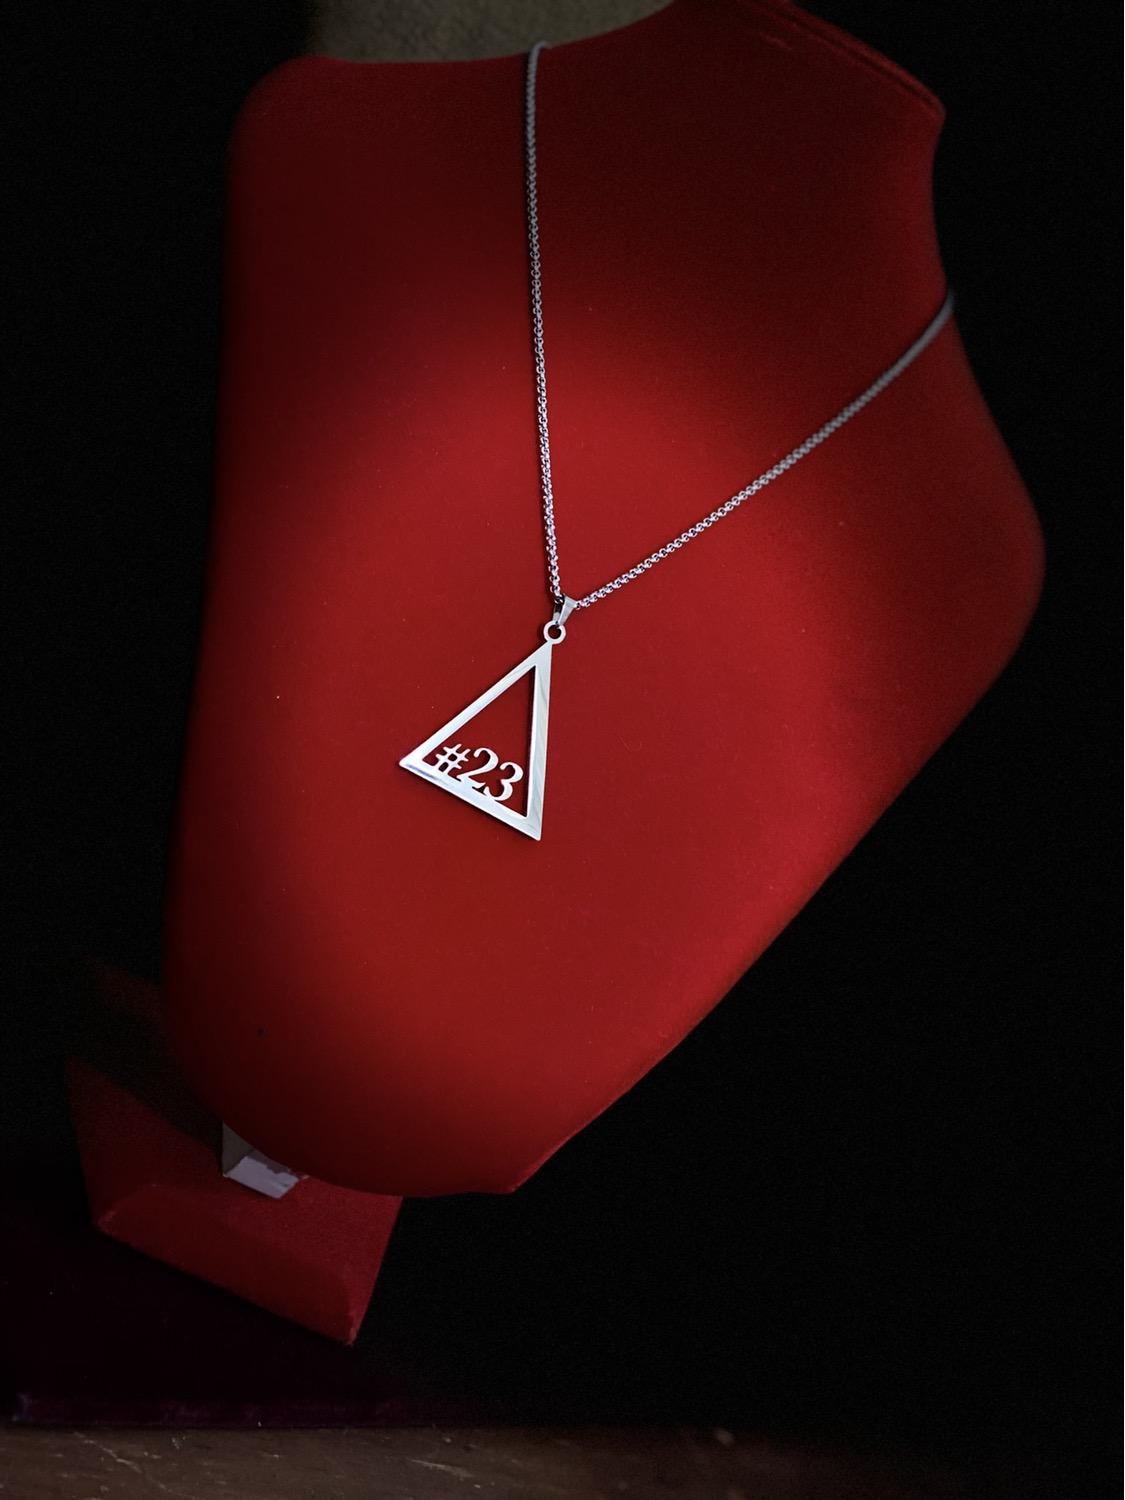 Thumbnail: Delta #21 - #30 Line Numbers SILVER Stainless Steel Pendant-Necklace!